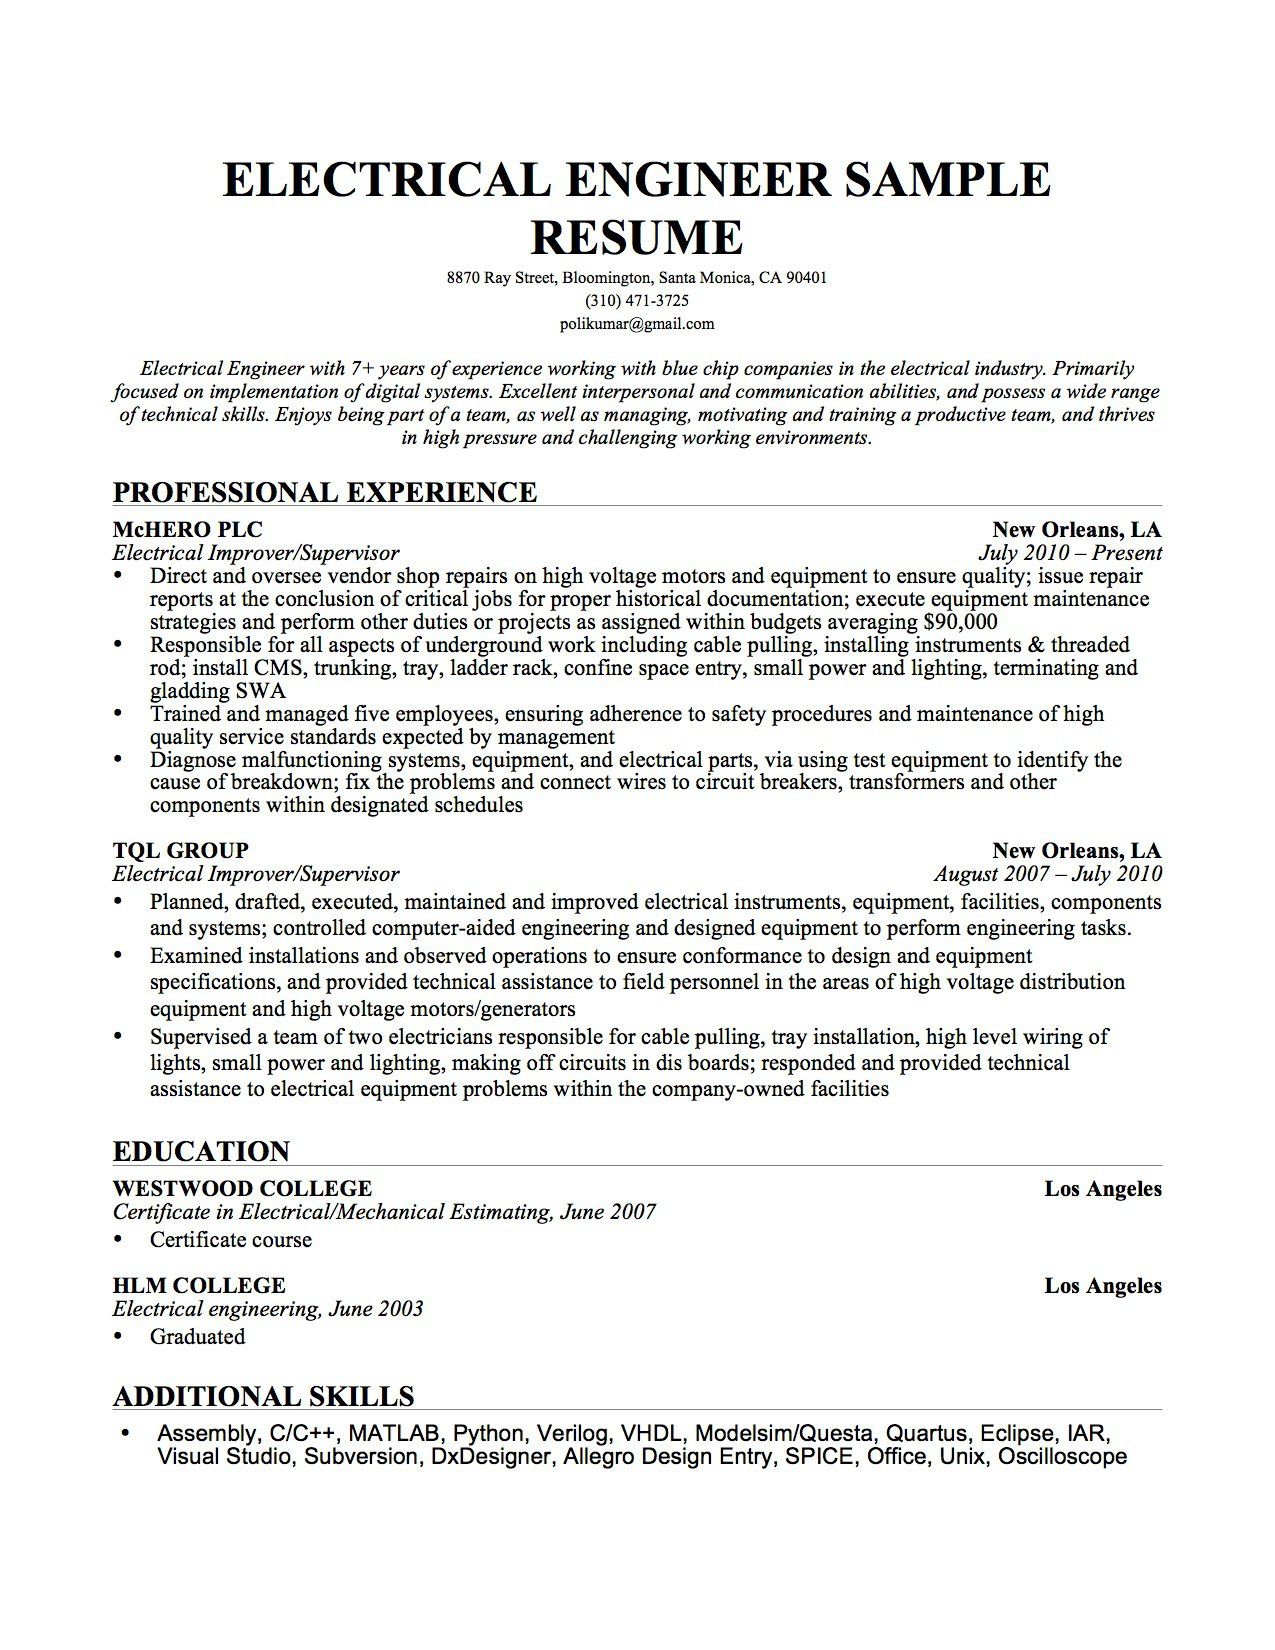 Engineer sample resume equipment fixed biomedical technician cover engineer sample resume equipment fixed biomedical technician cover letter vosvetenet madrichimfo Gallery